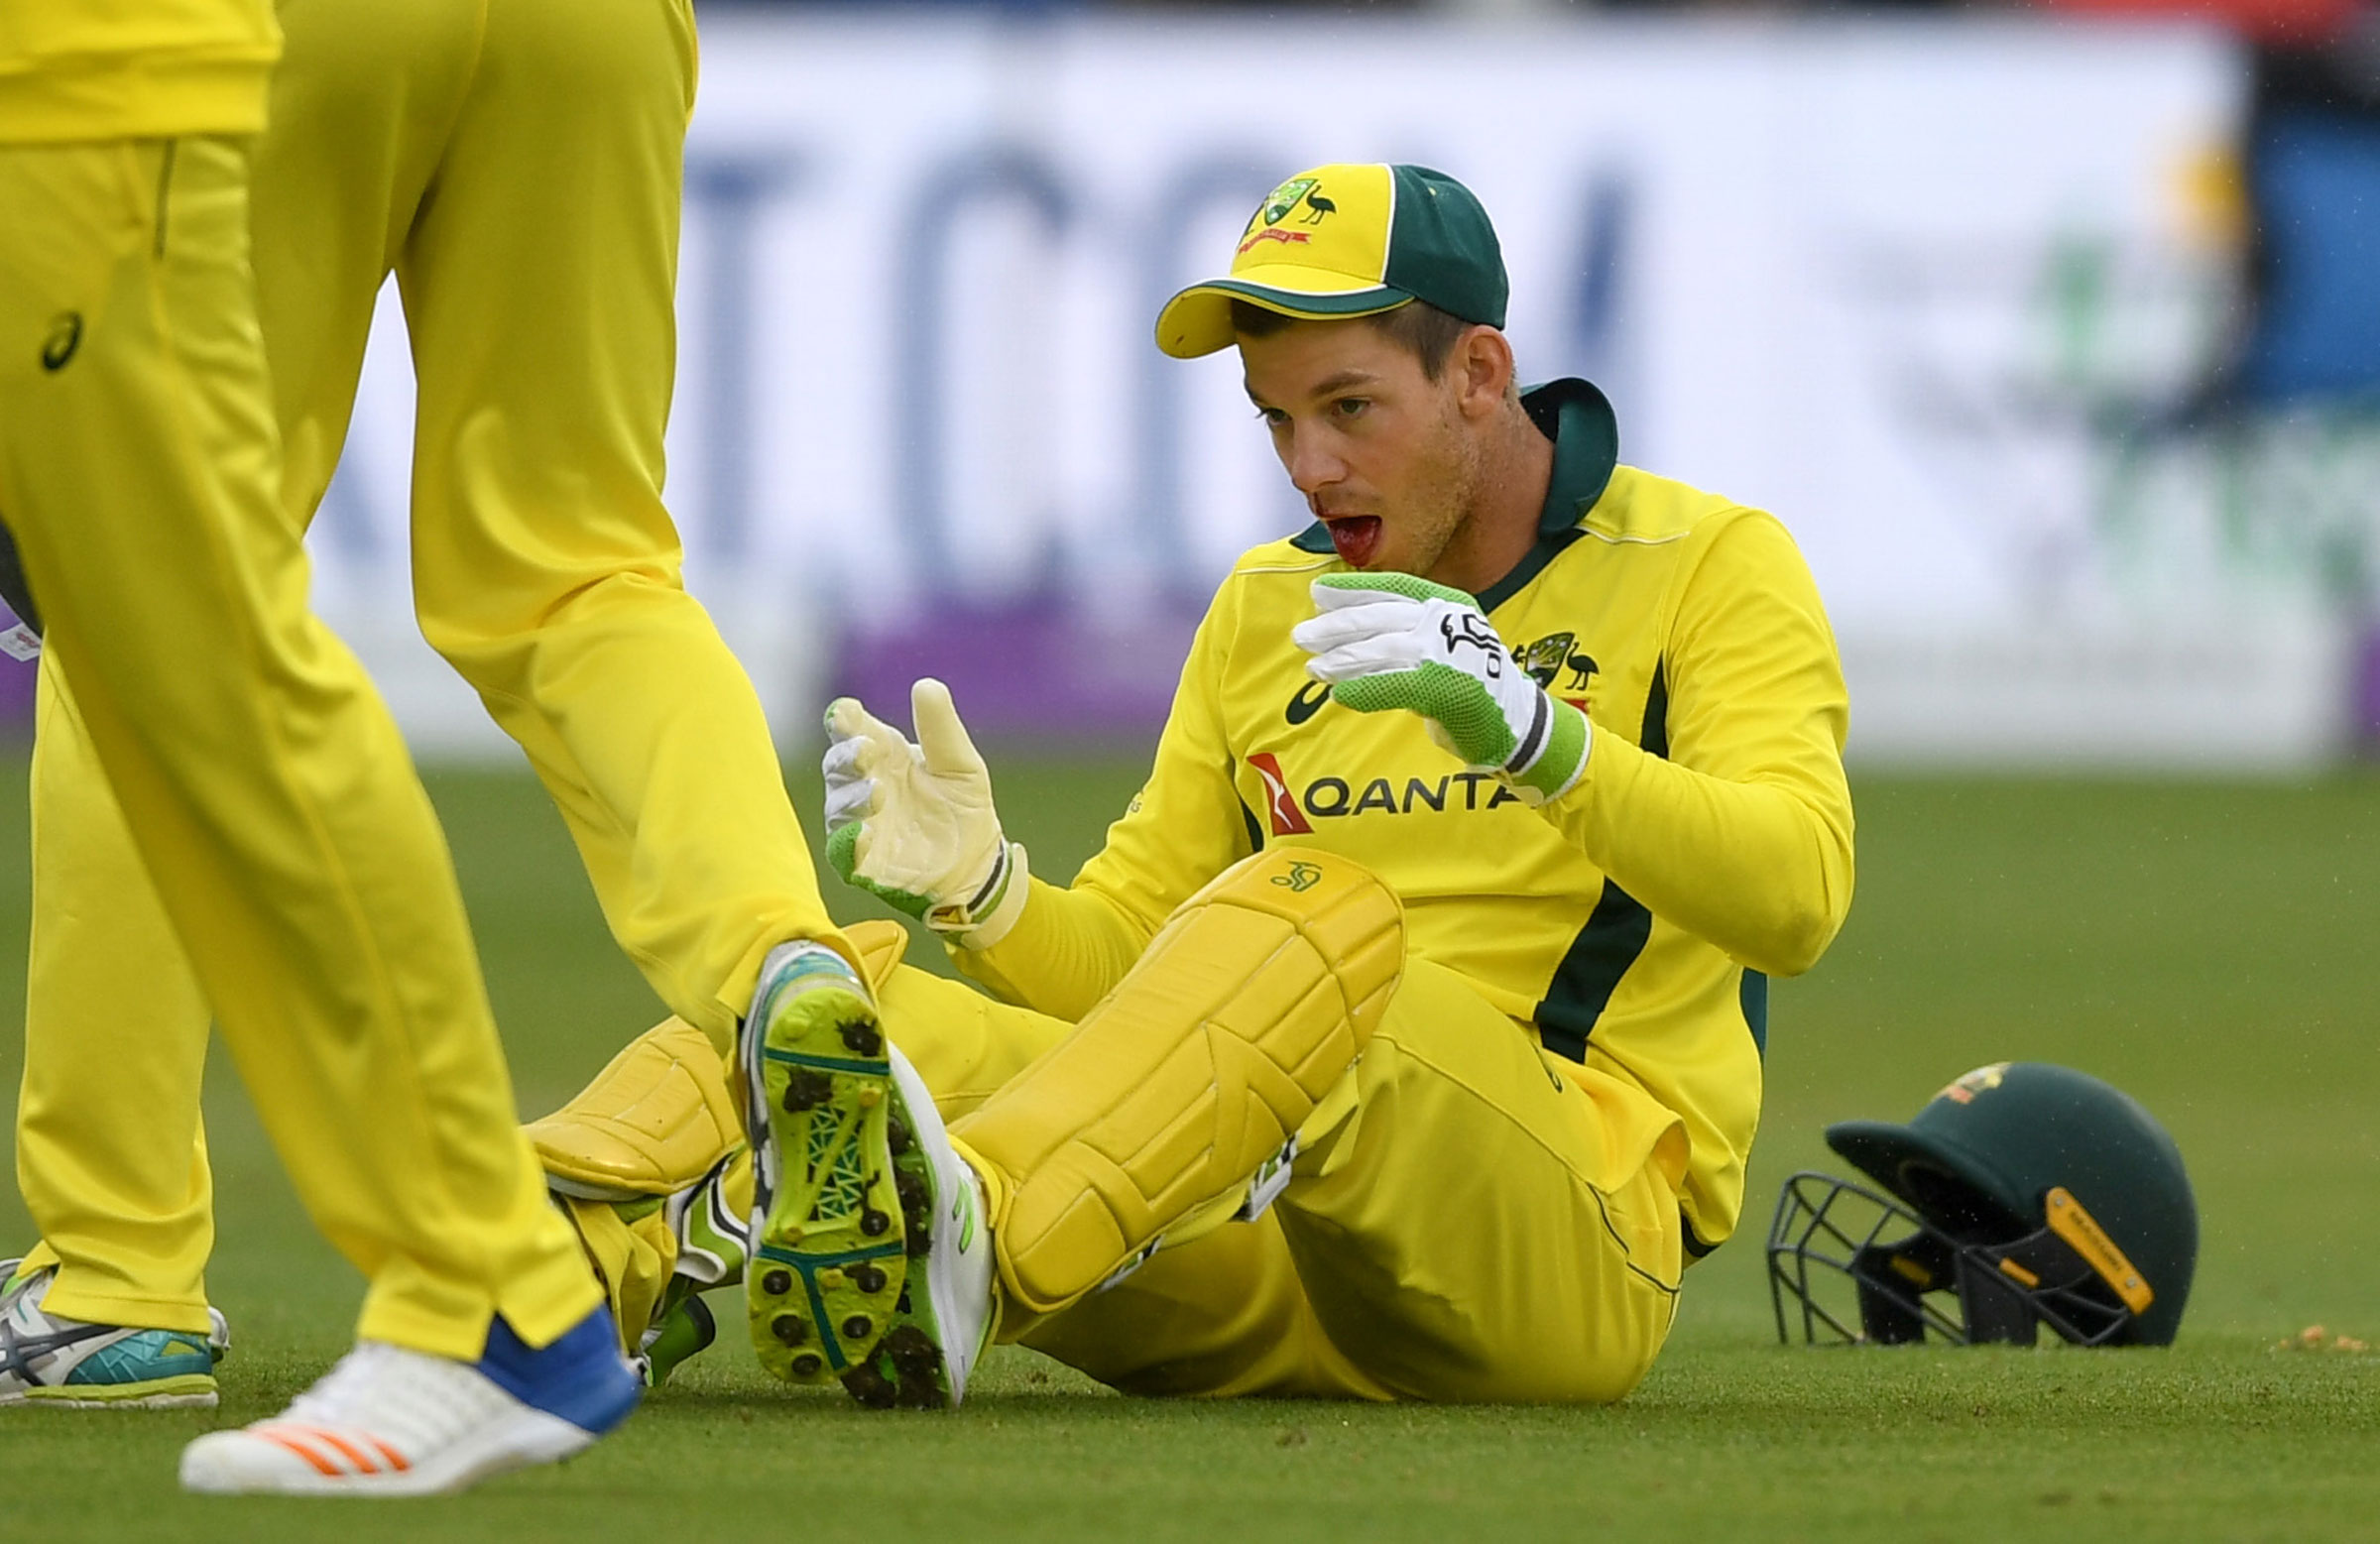 Tim Paine reacts after being hit in the face // Getty